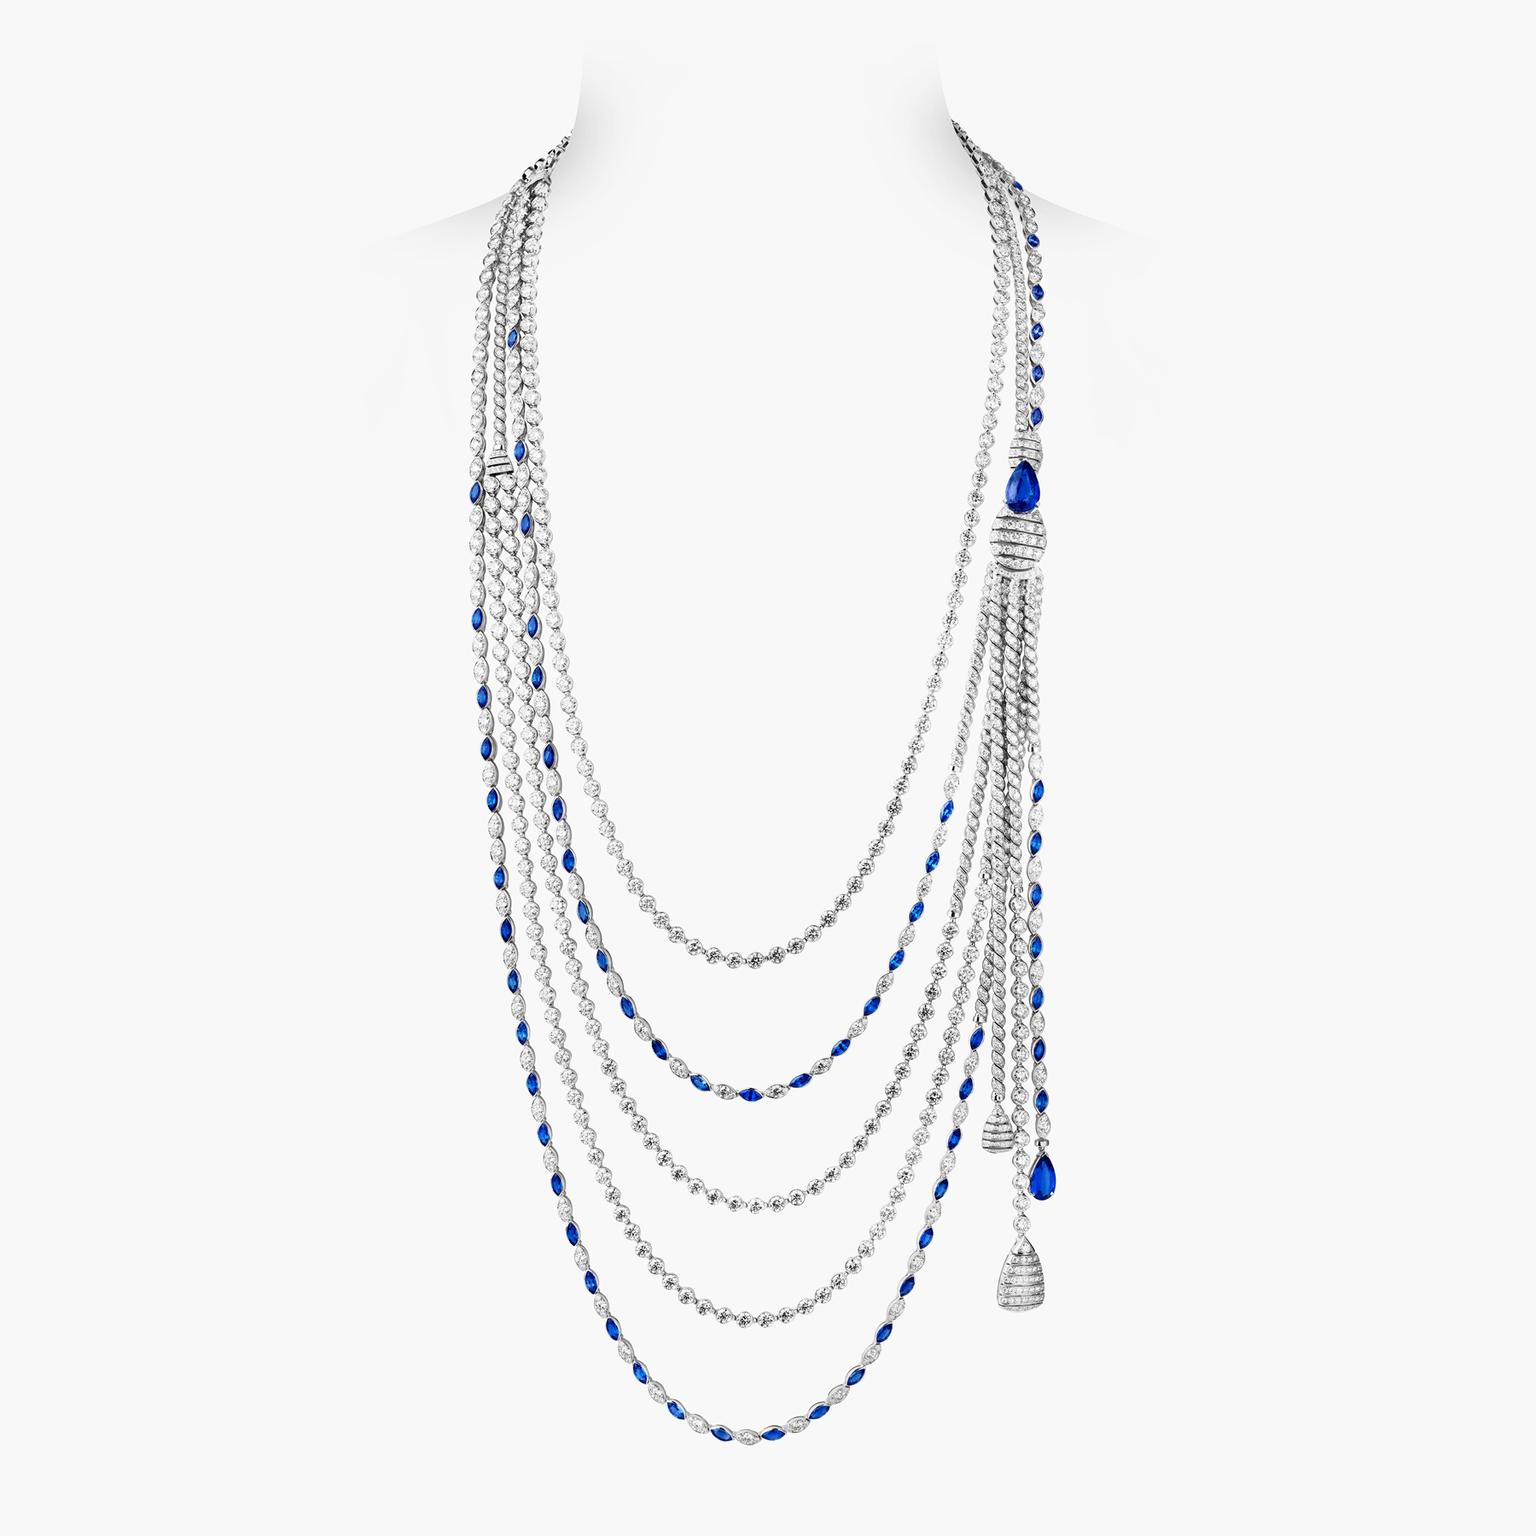 Chanel Flying Cloud Sapphire Stripes necklace